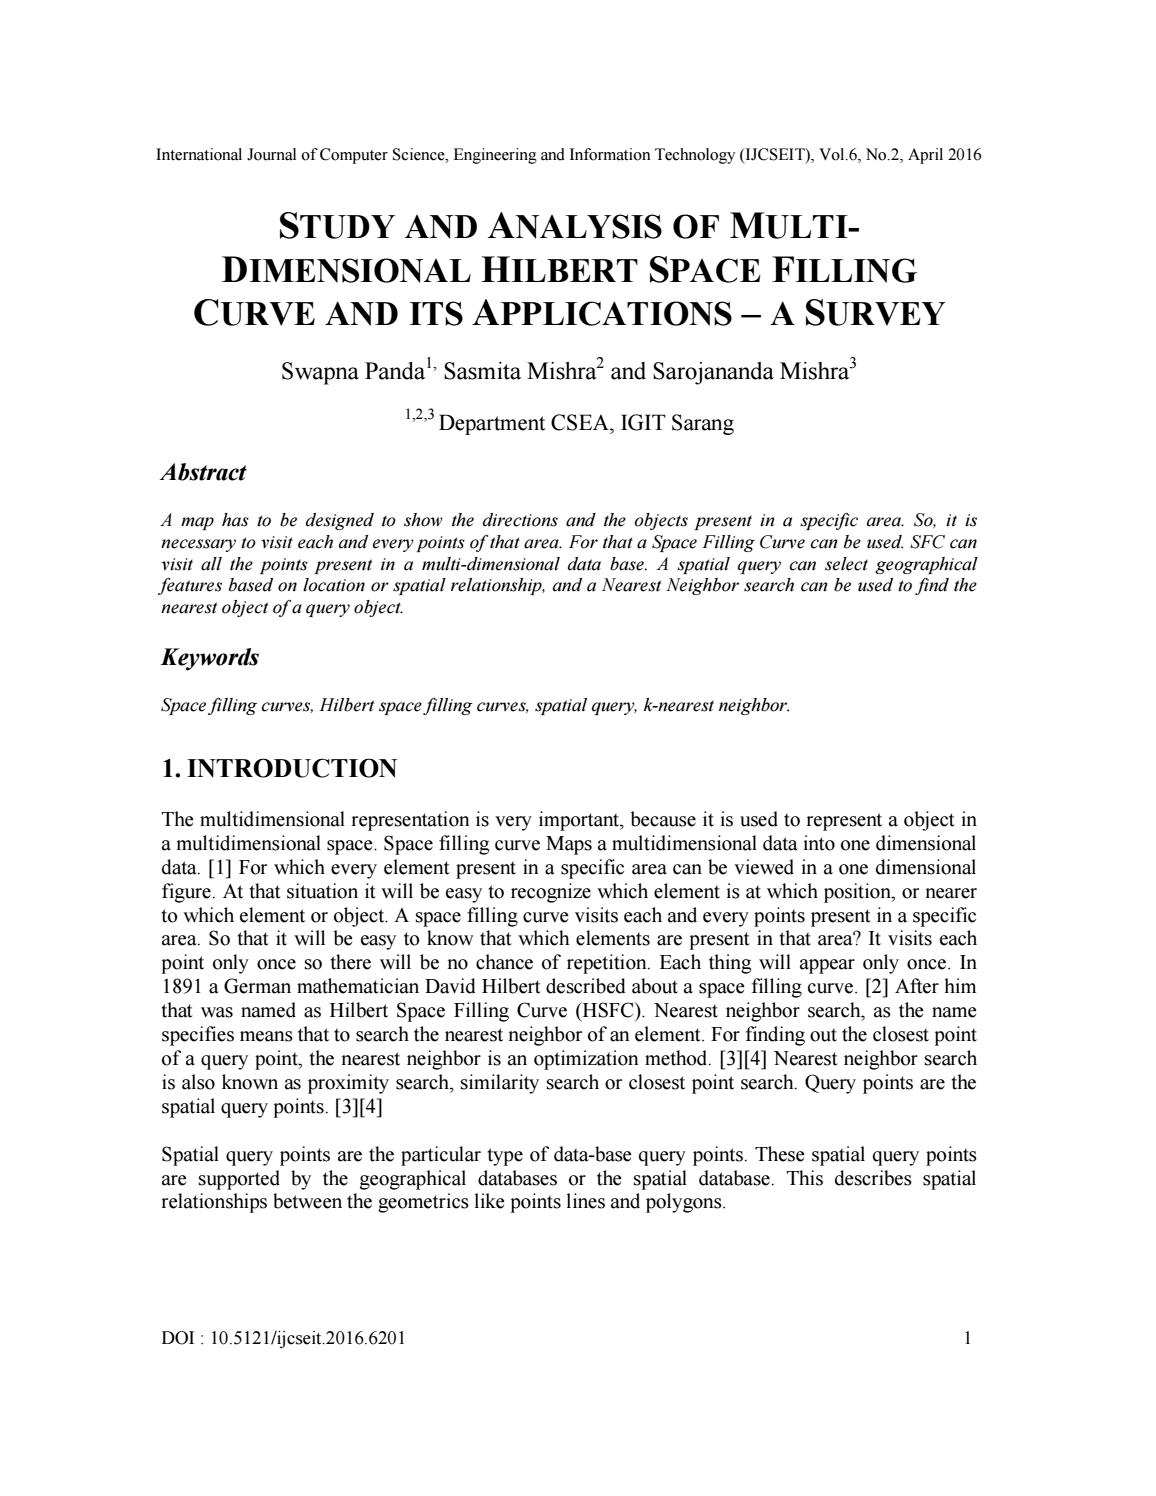 STUDY AND ANALYSIS OF MULTIDIMENSIONAL HILBERT SPACE FILLING